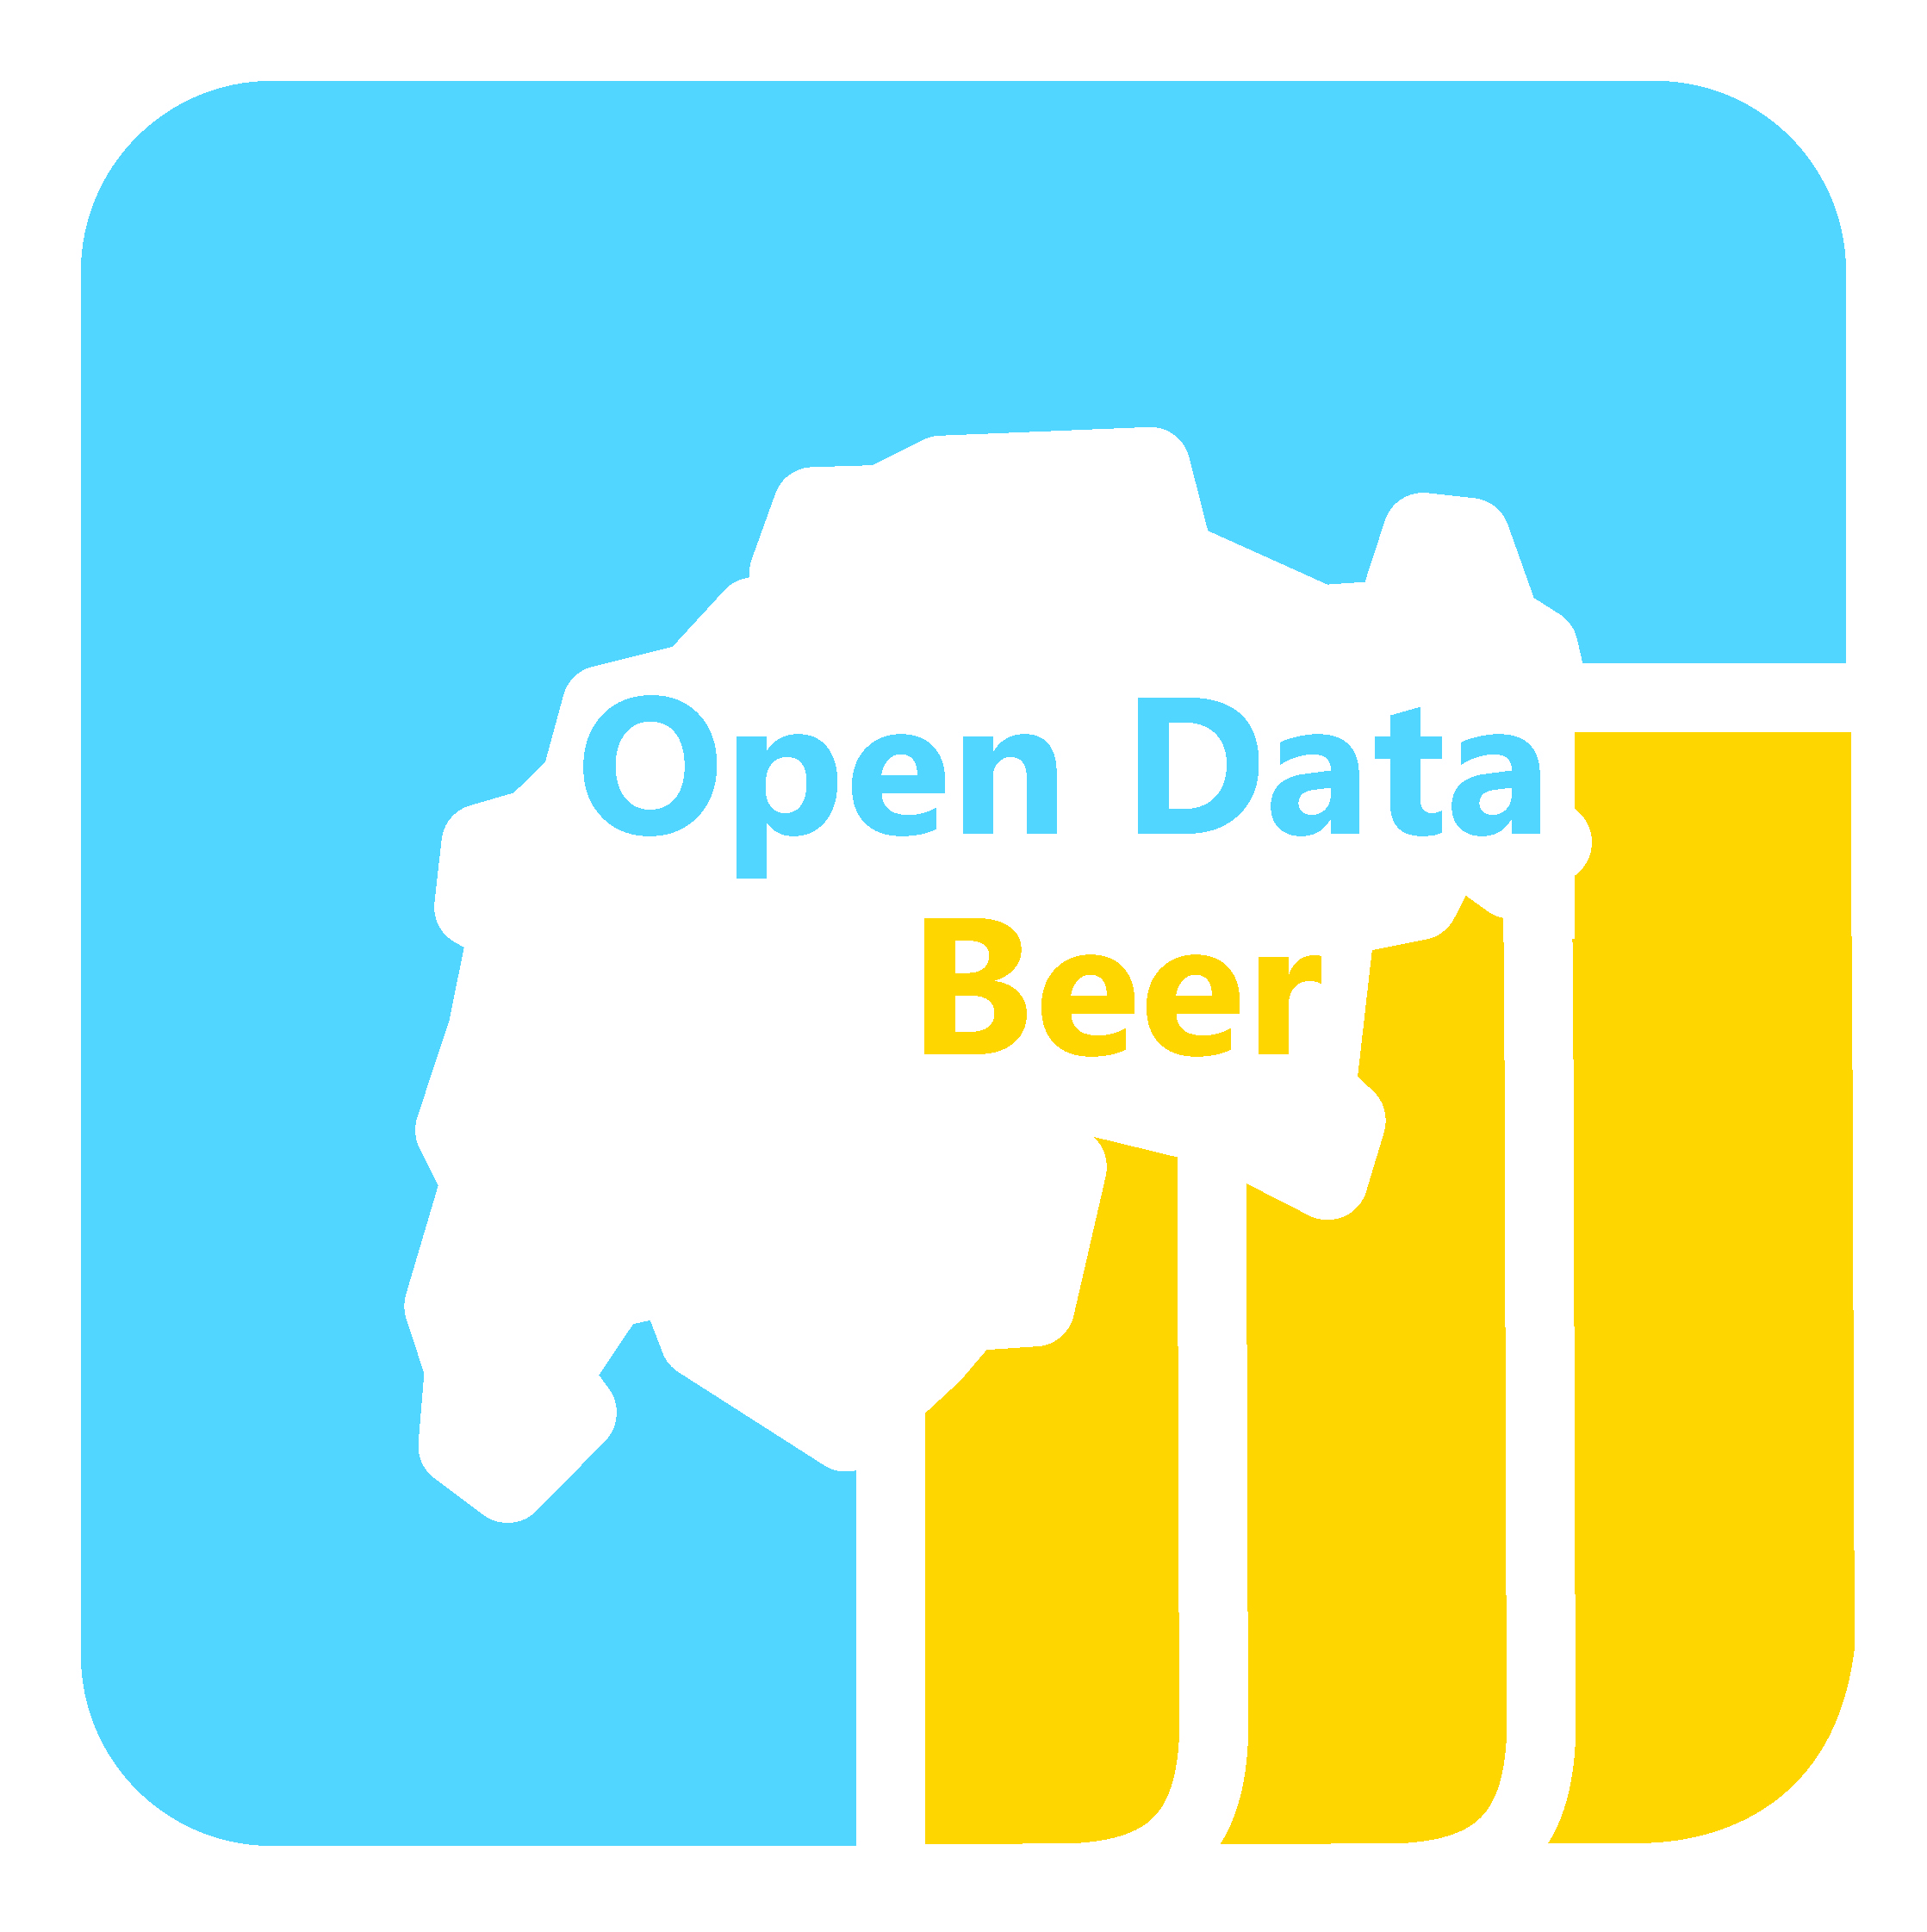 open-data-beer